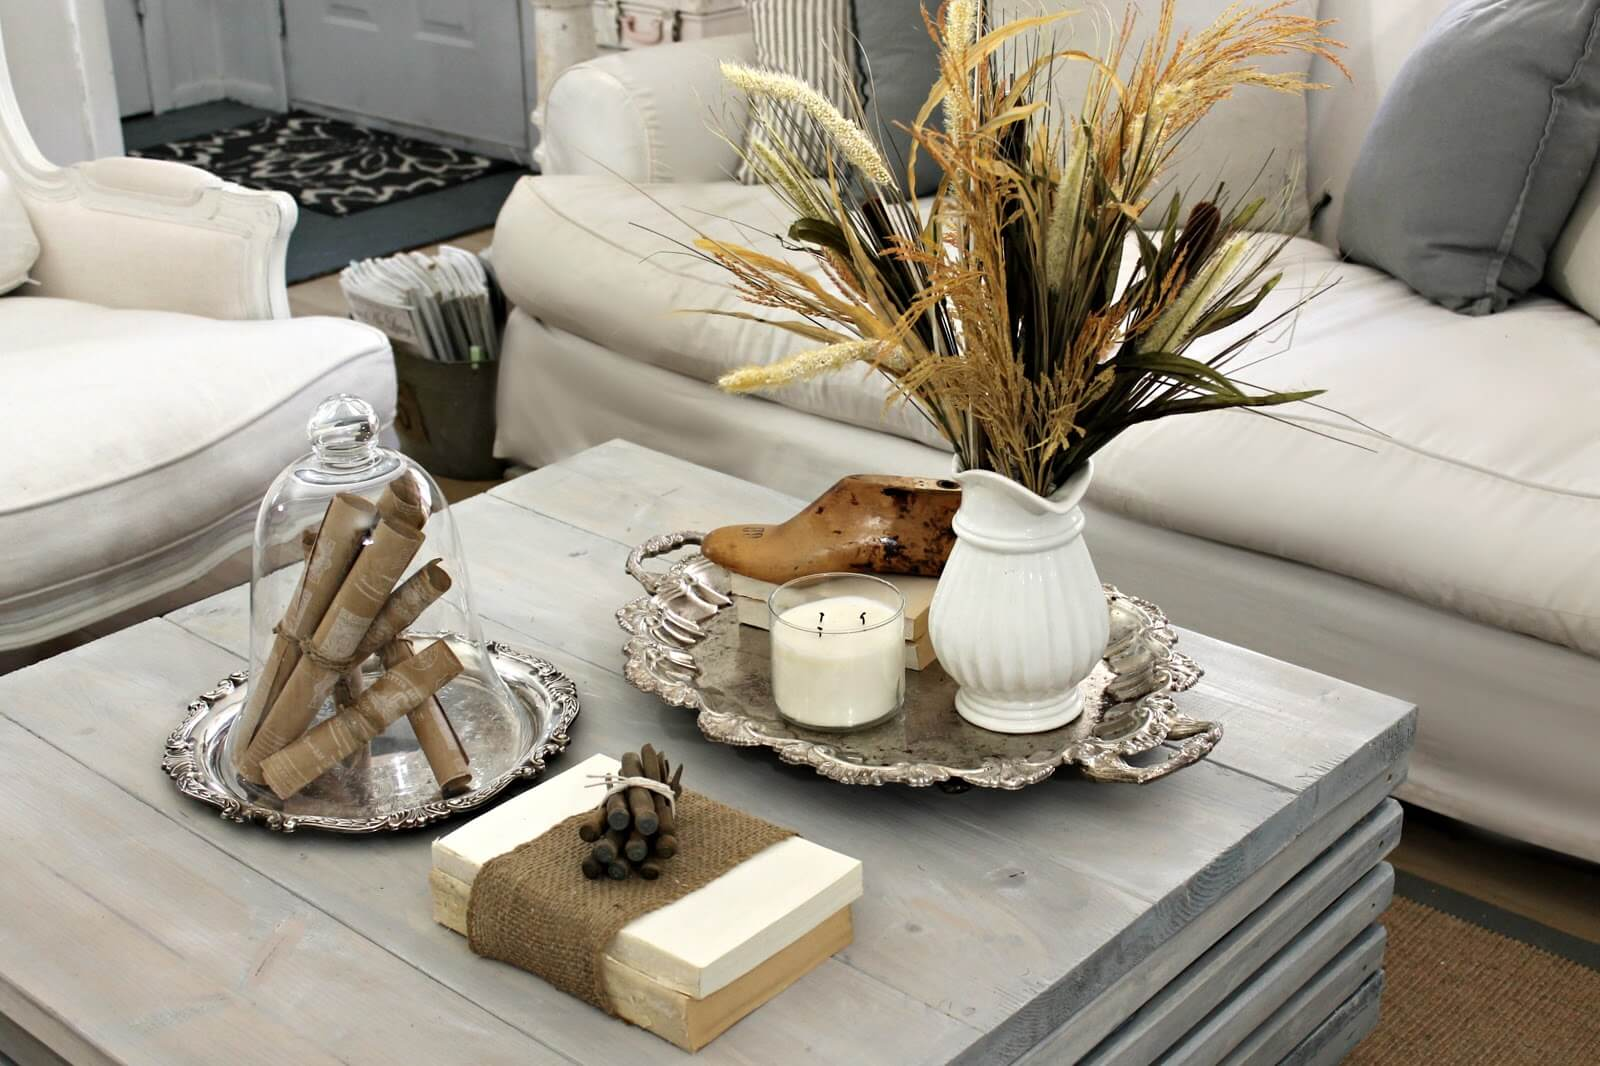 20. Earth-toned Brown and White Natural Element Display with Silver Accents